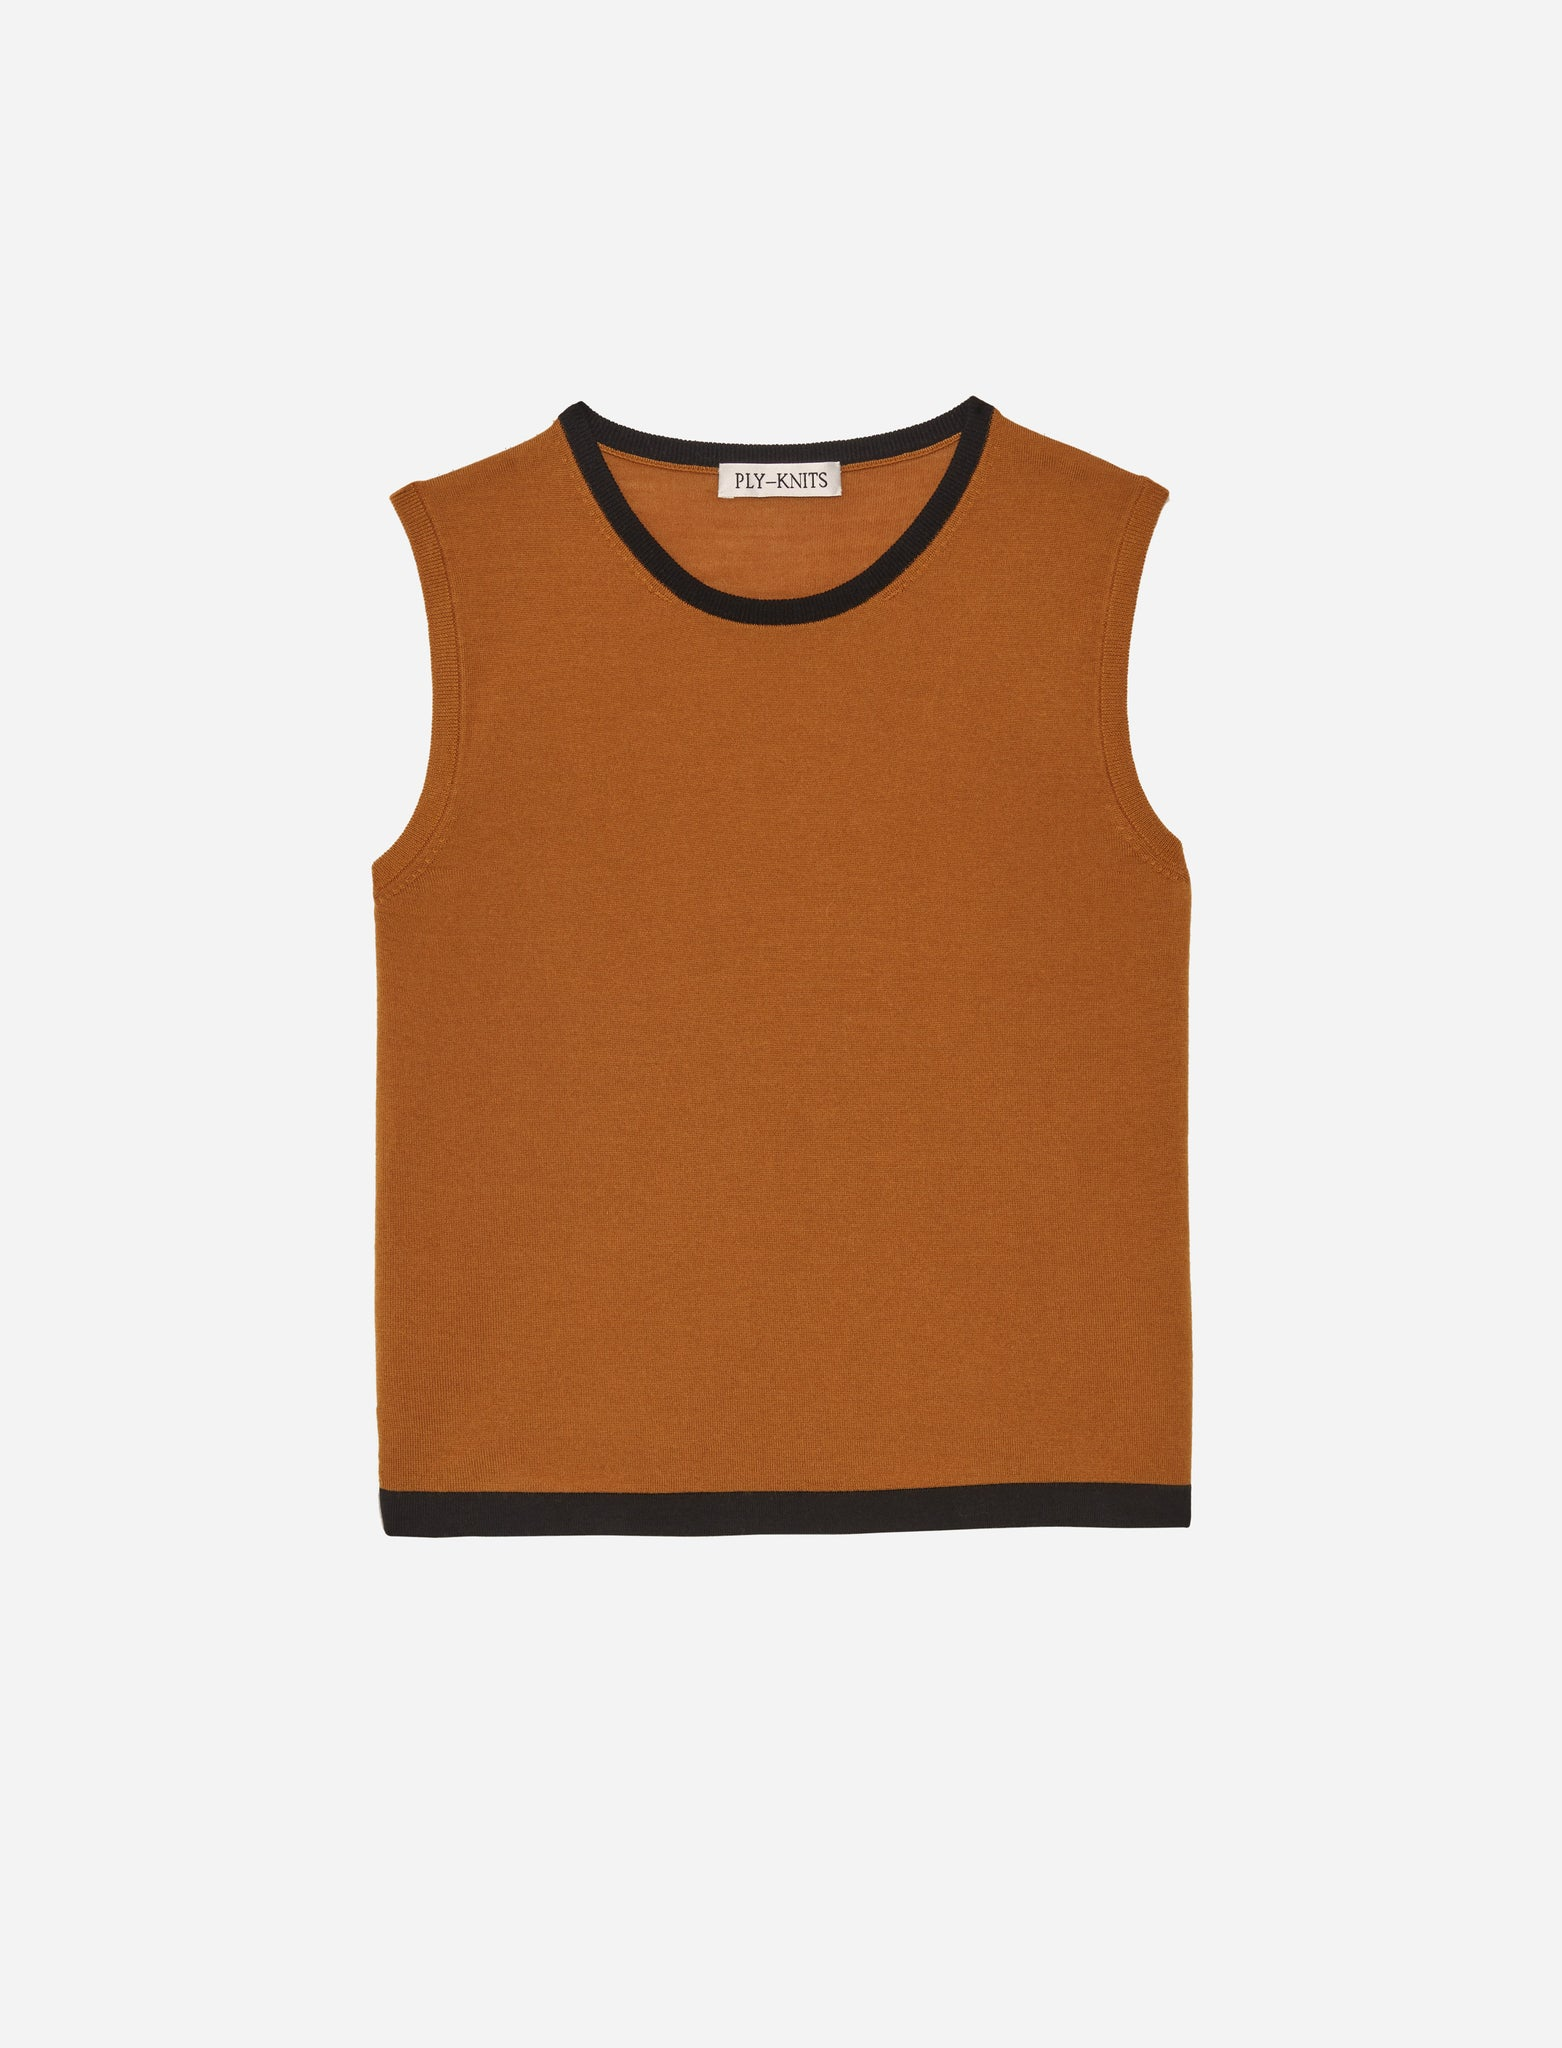 EMIL TOP IN HOT-HOT-MUSTARD